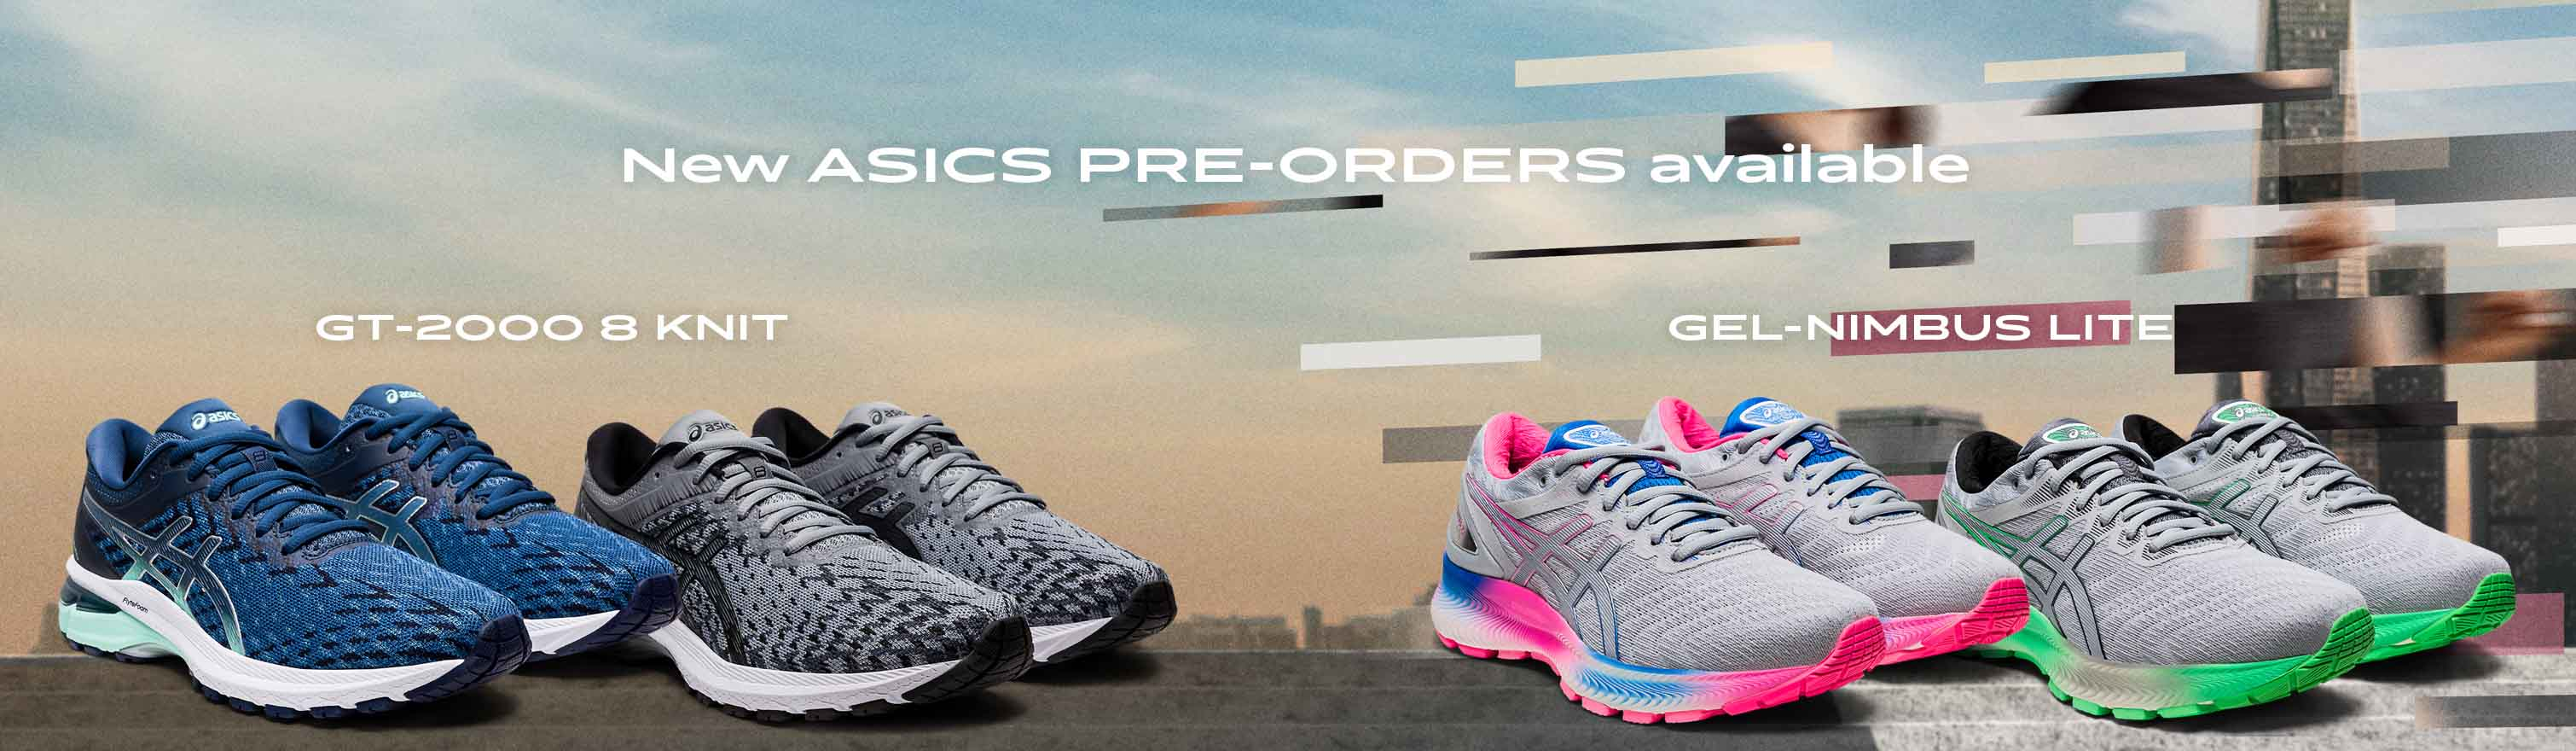 Pre-Order the Asics GT 2000 8 Knit and the GEL Nimbus LITE